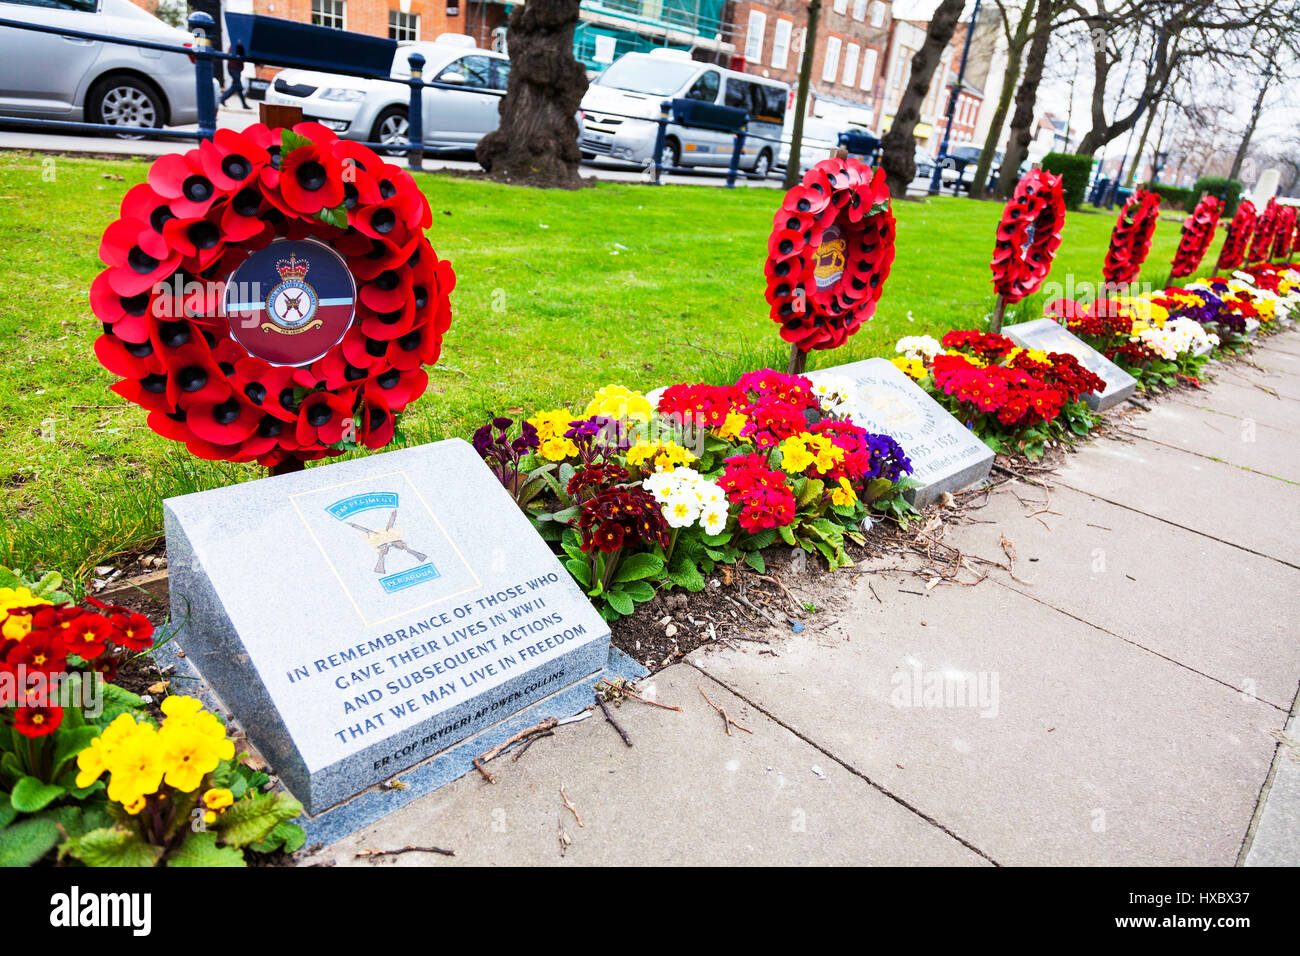 Poppy wreath poppy wreaths for poppy day WW2 memorial stone for soldiers poppy display UK England mark of respect - Stock Image